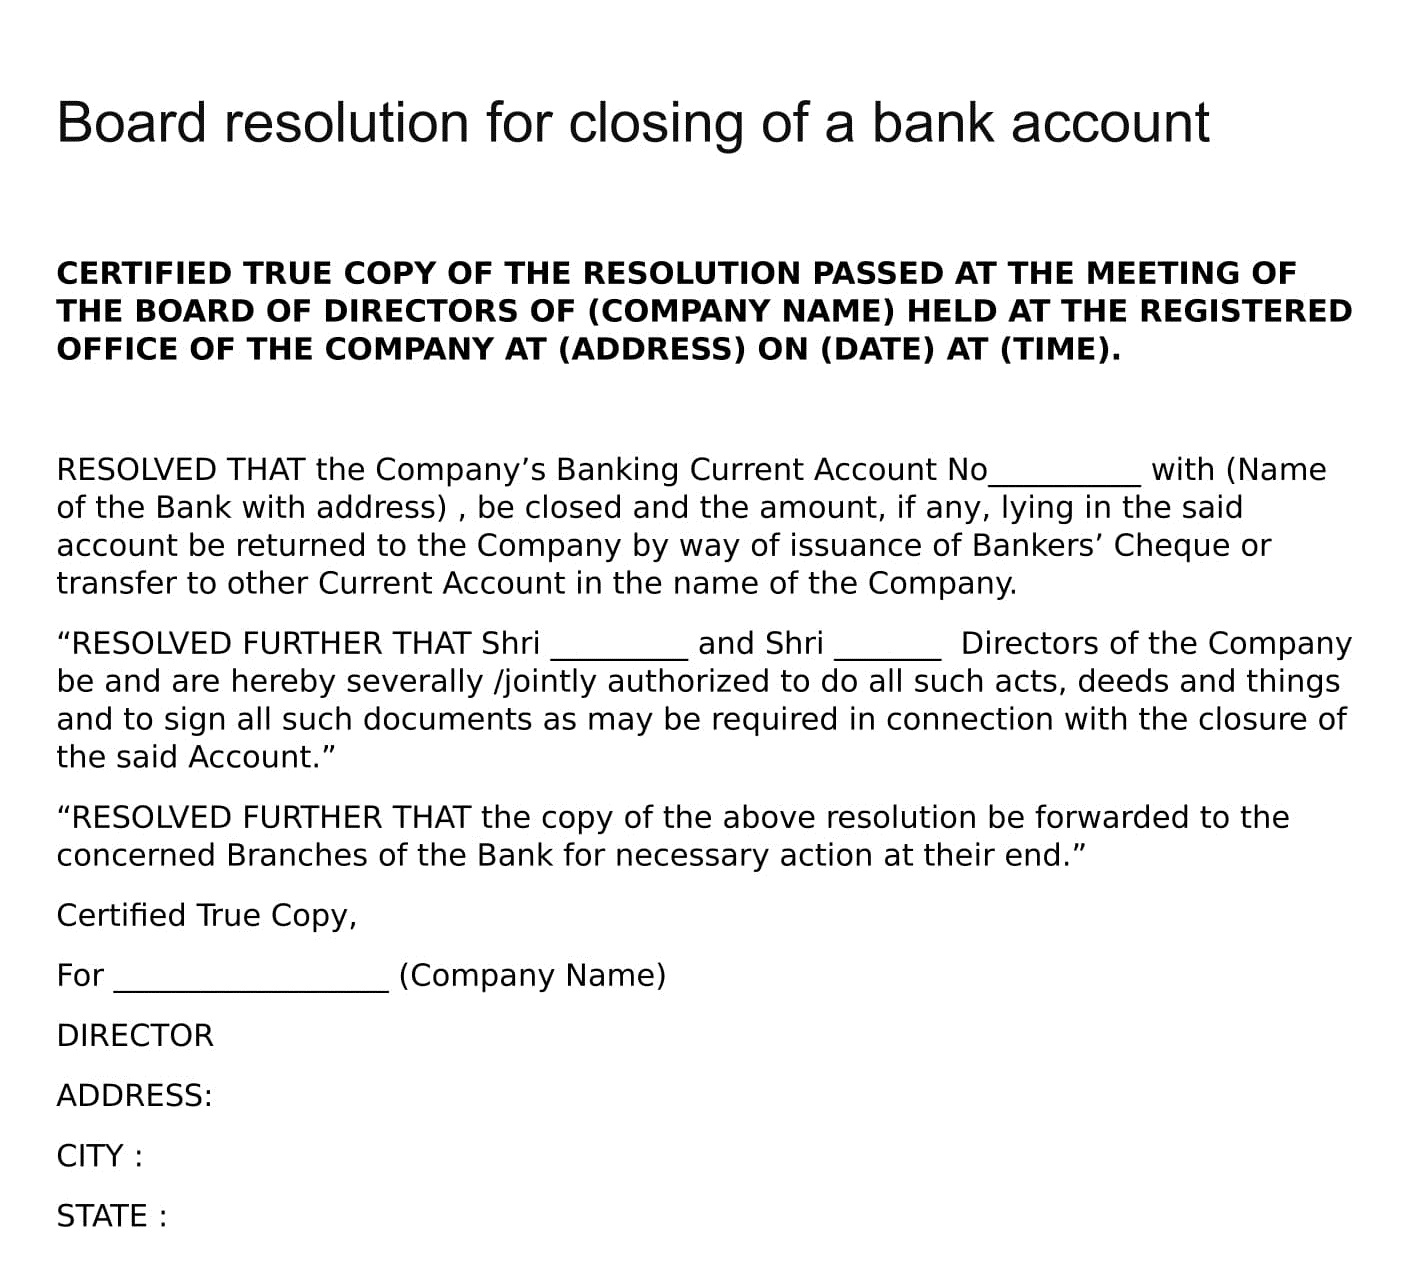 Board resolution for closing of a bank account-1.jpg